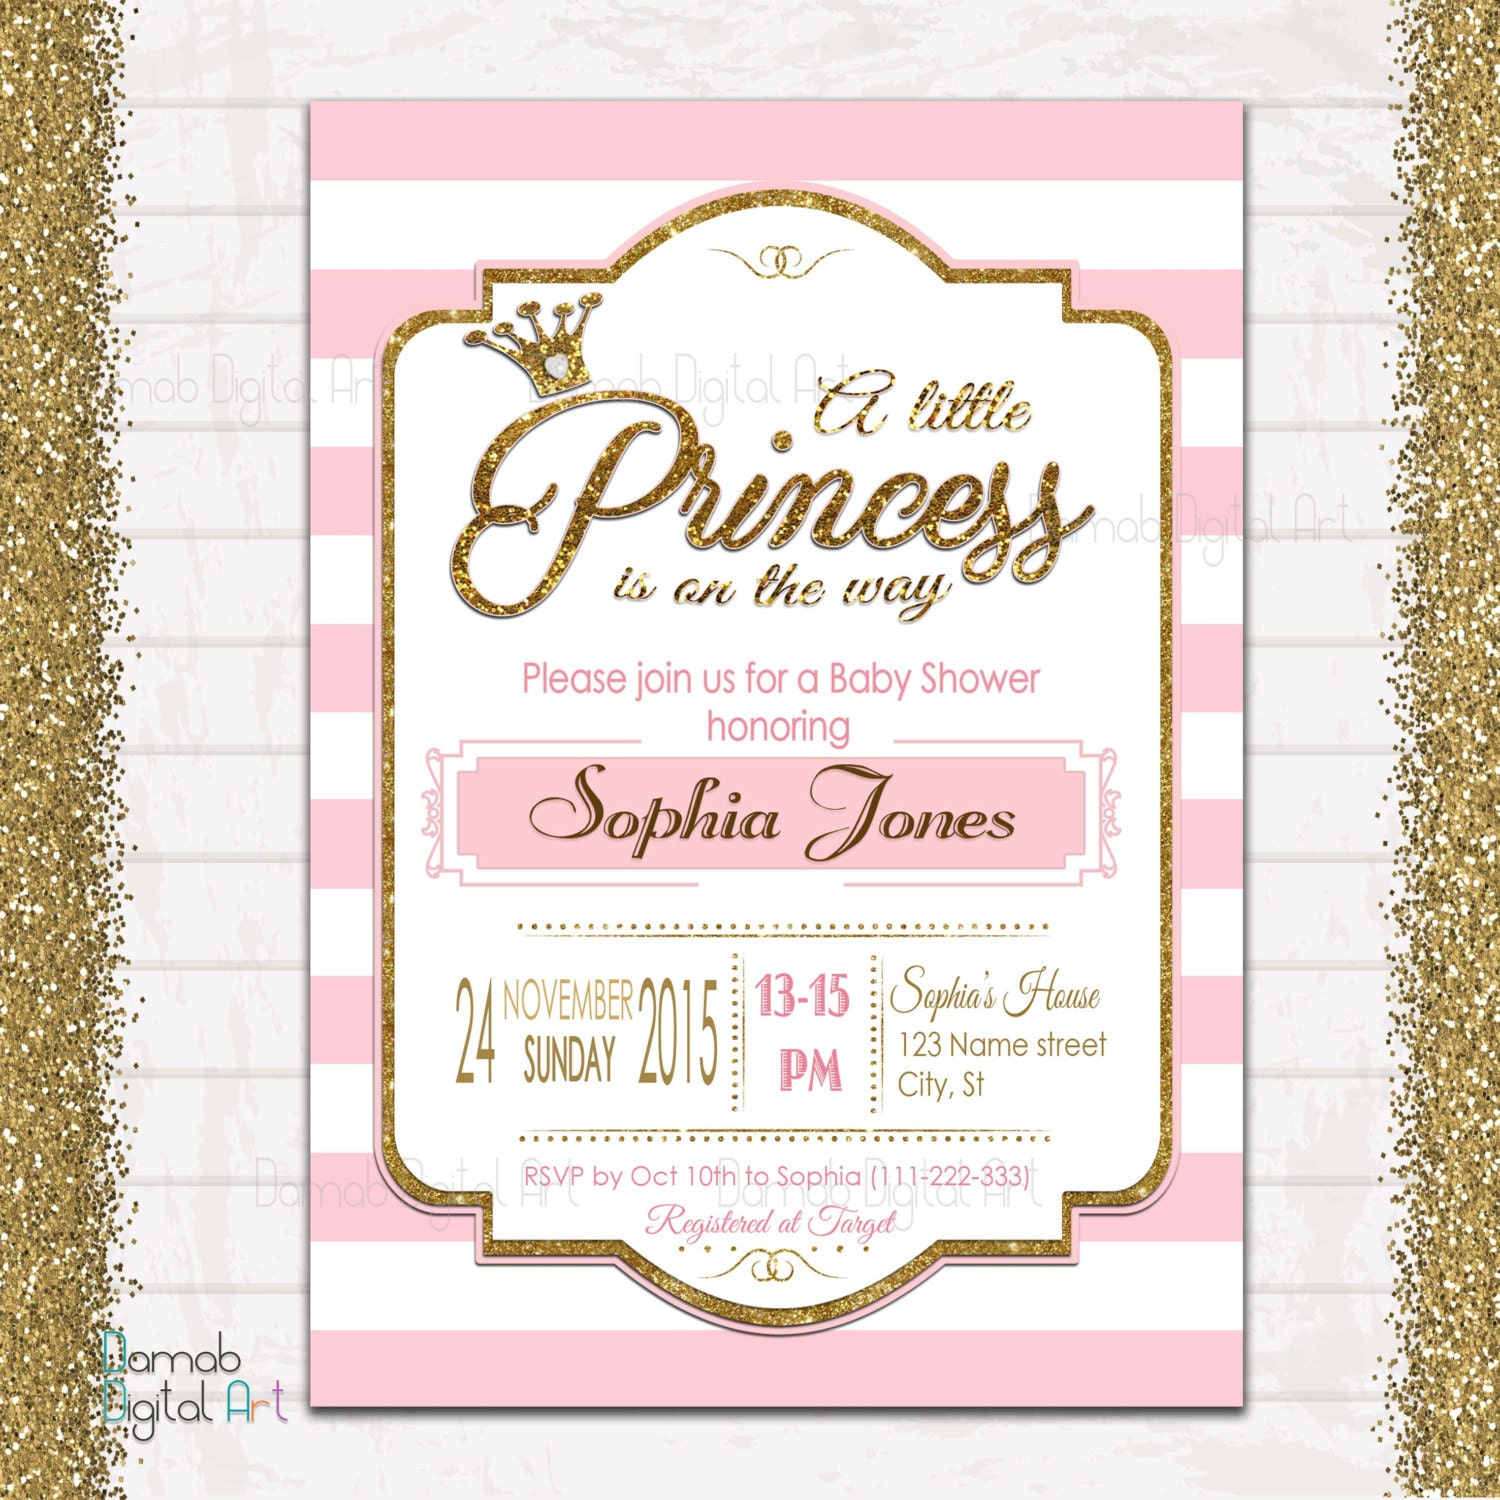 Invitaci 243 N De Princesa Baby Shower Invitaci 243 N Ducha Beb 233